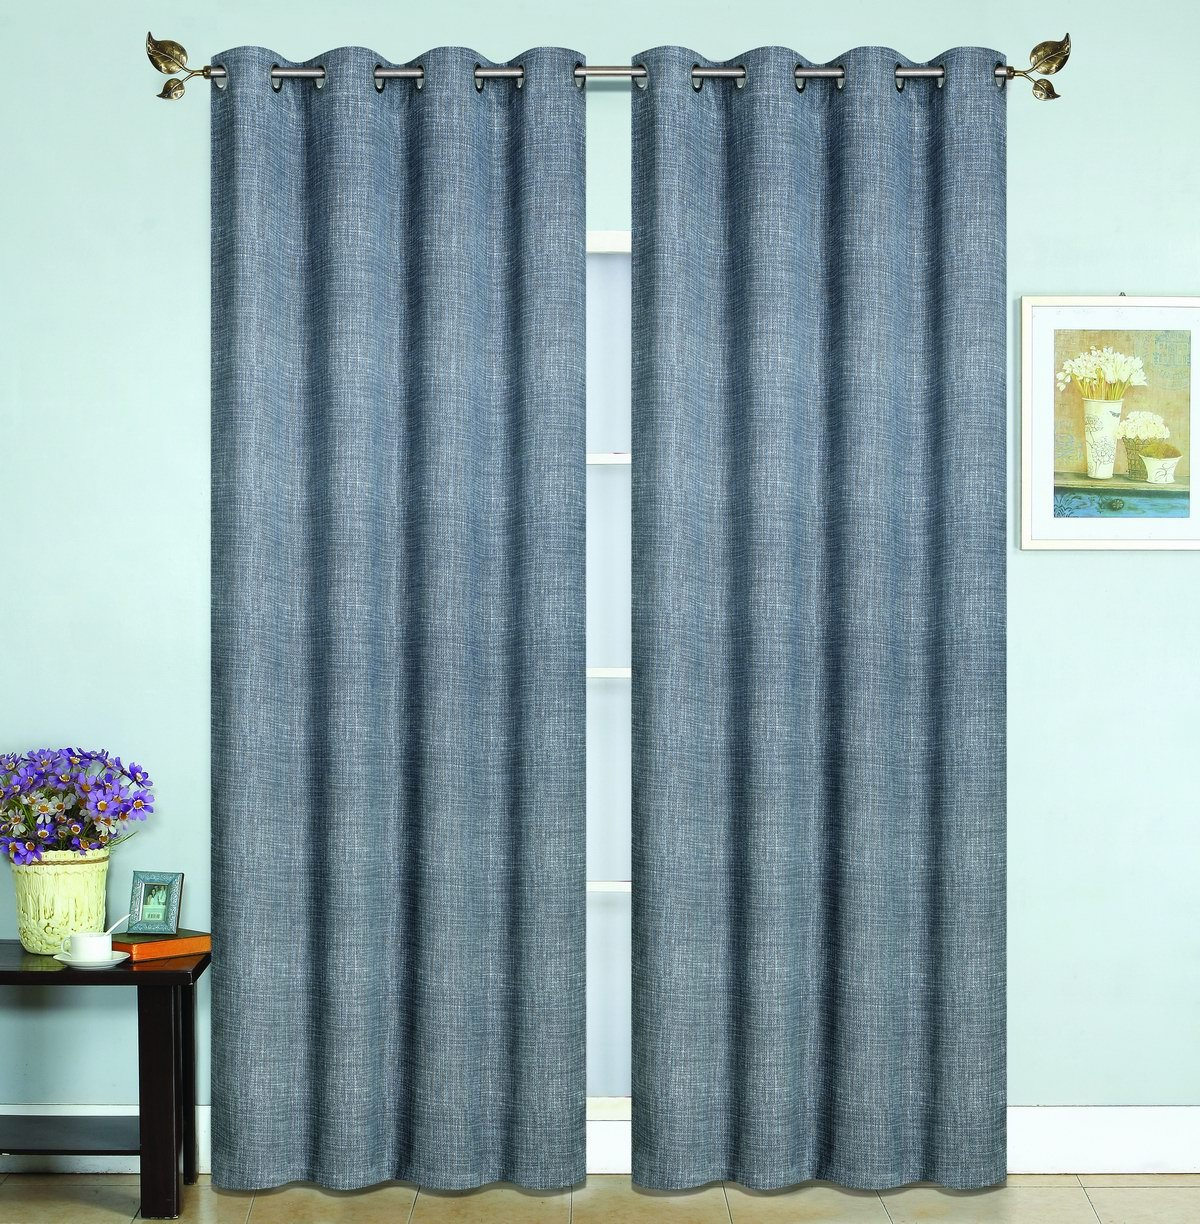 All American Collection New 2 Panel Printed Woven Design 99% Guarantee Blackout Curtain Set Charcoal